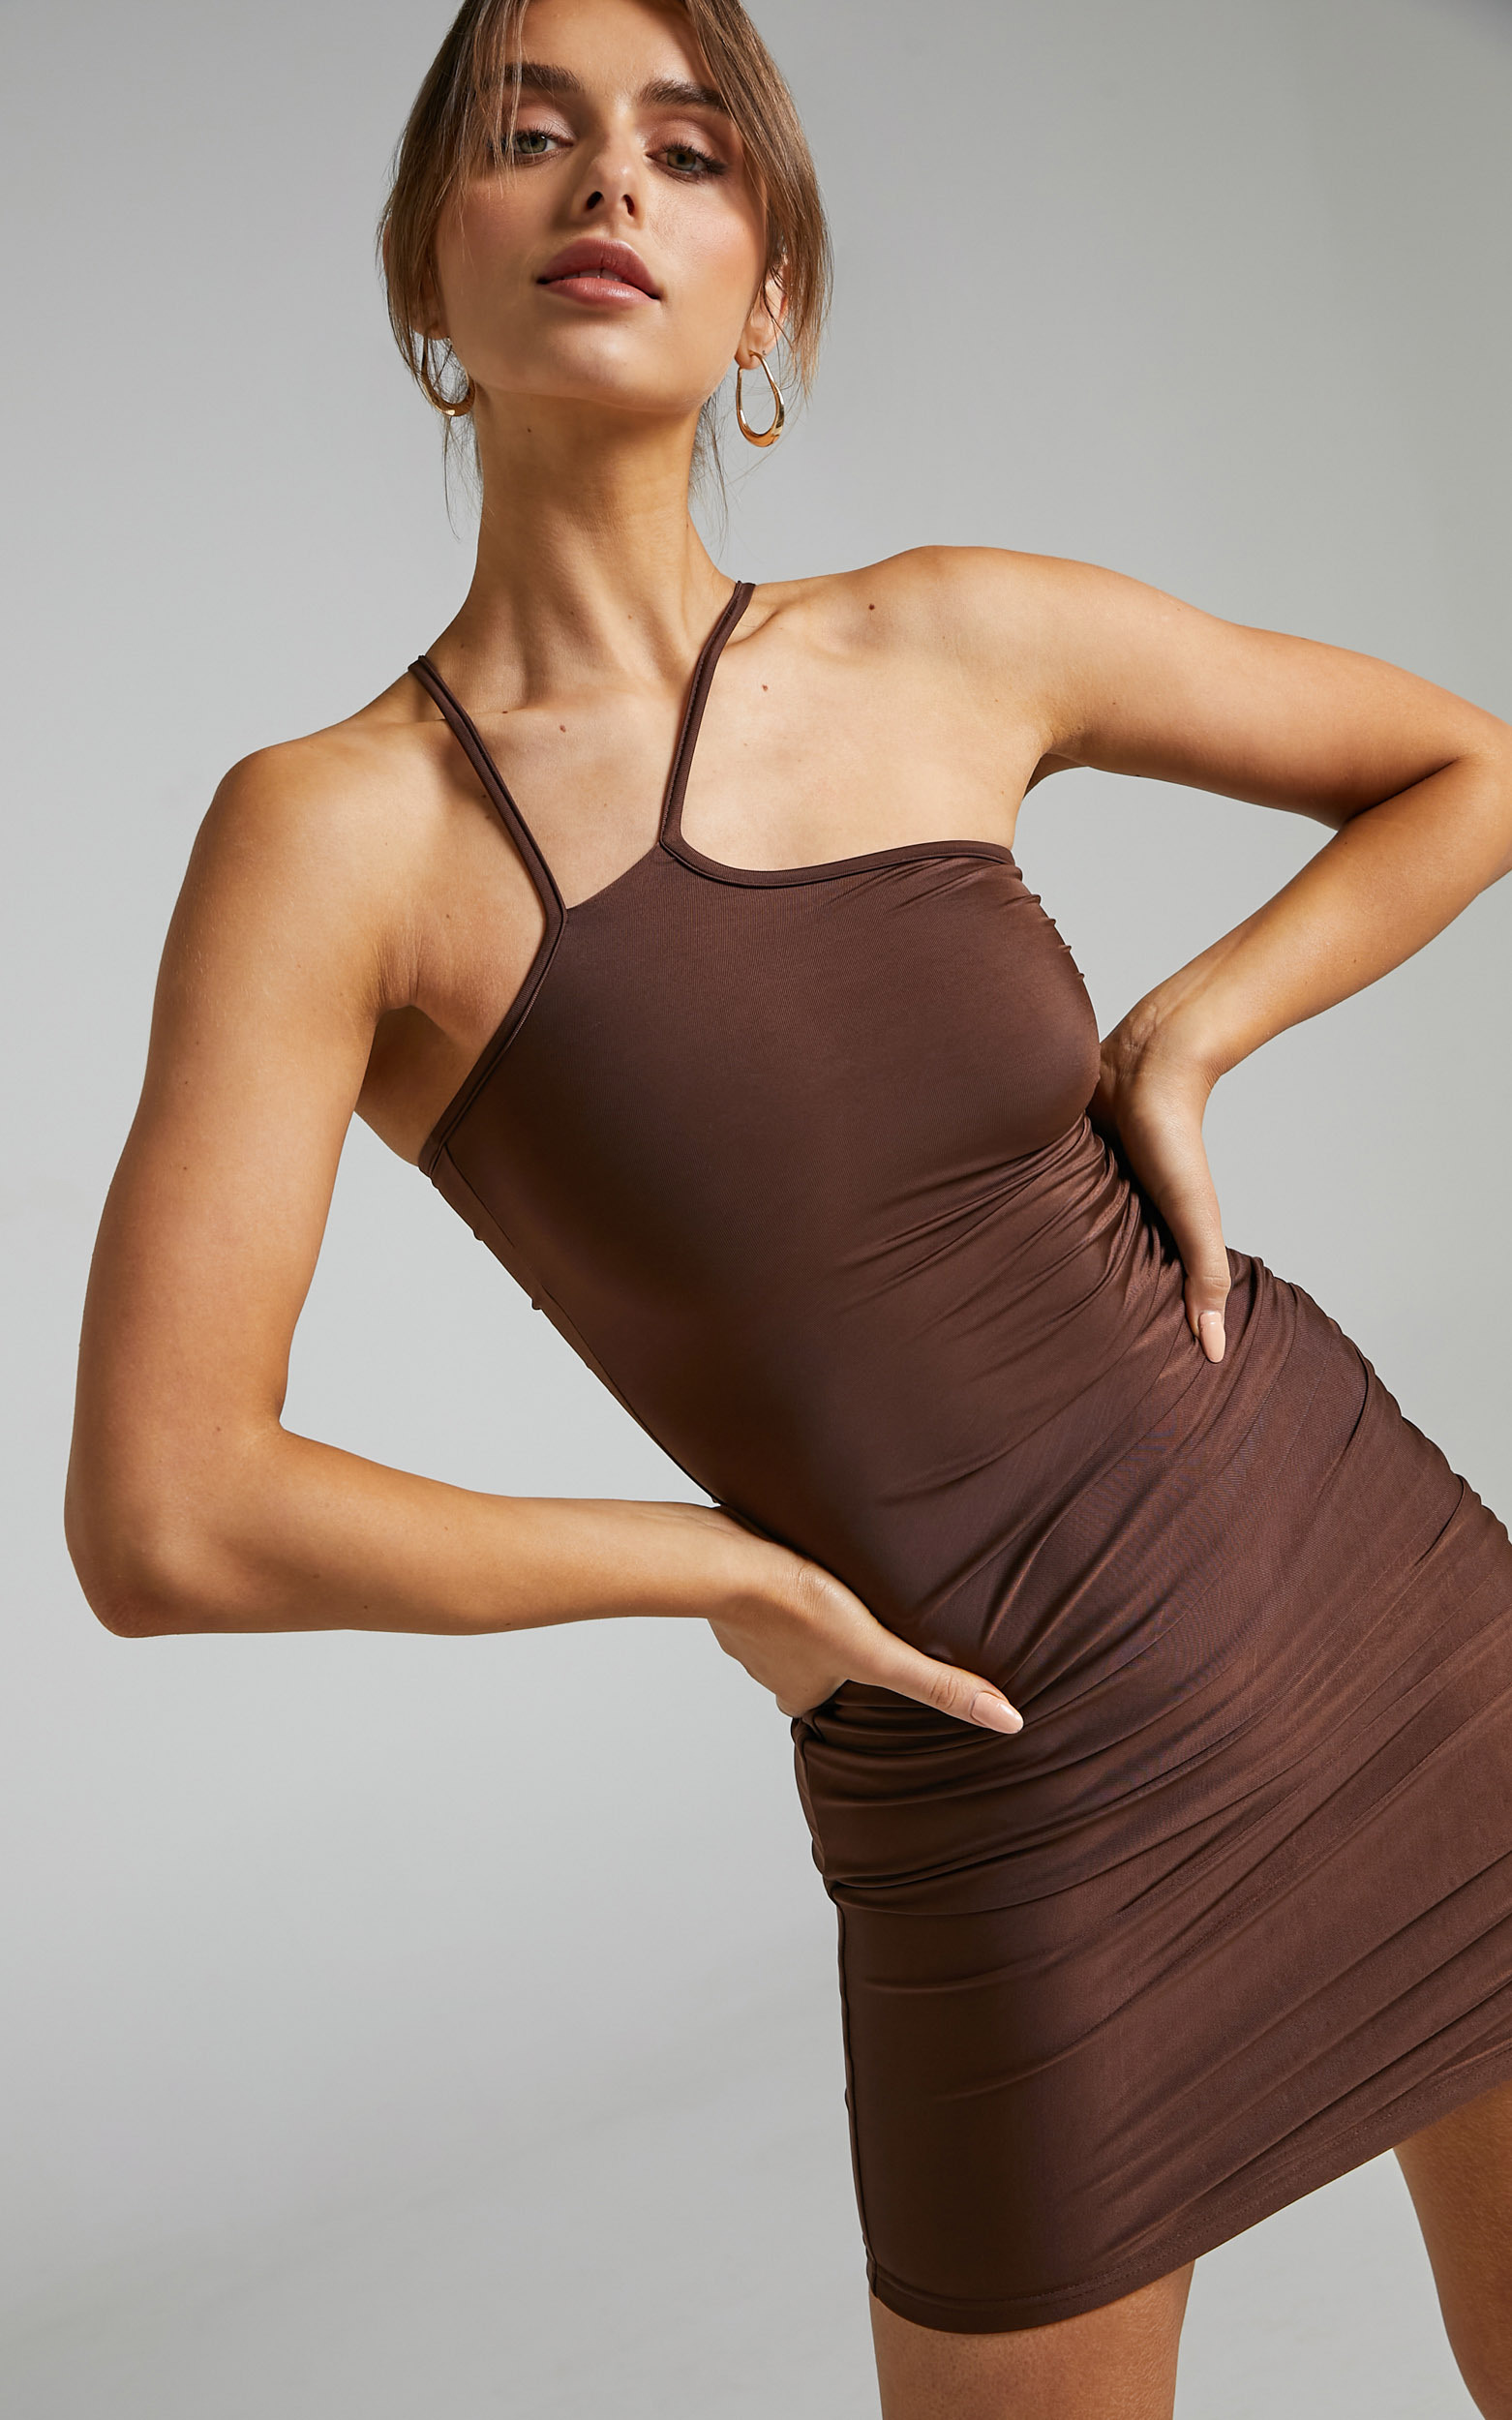 BY DYLN - Eugenie Dress in Chocolate - L, BRN1, hi-res image number null